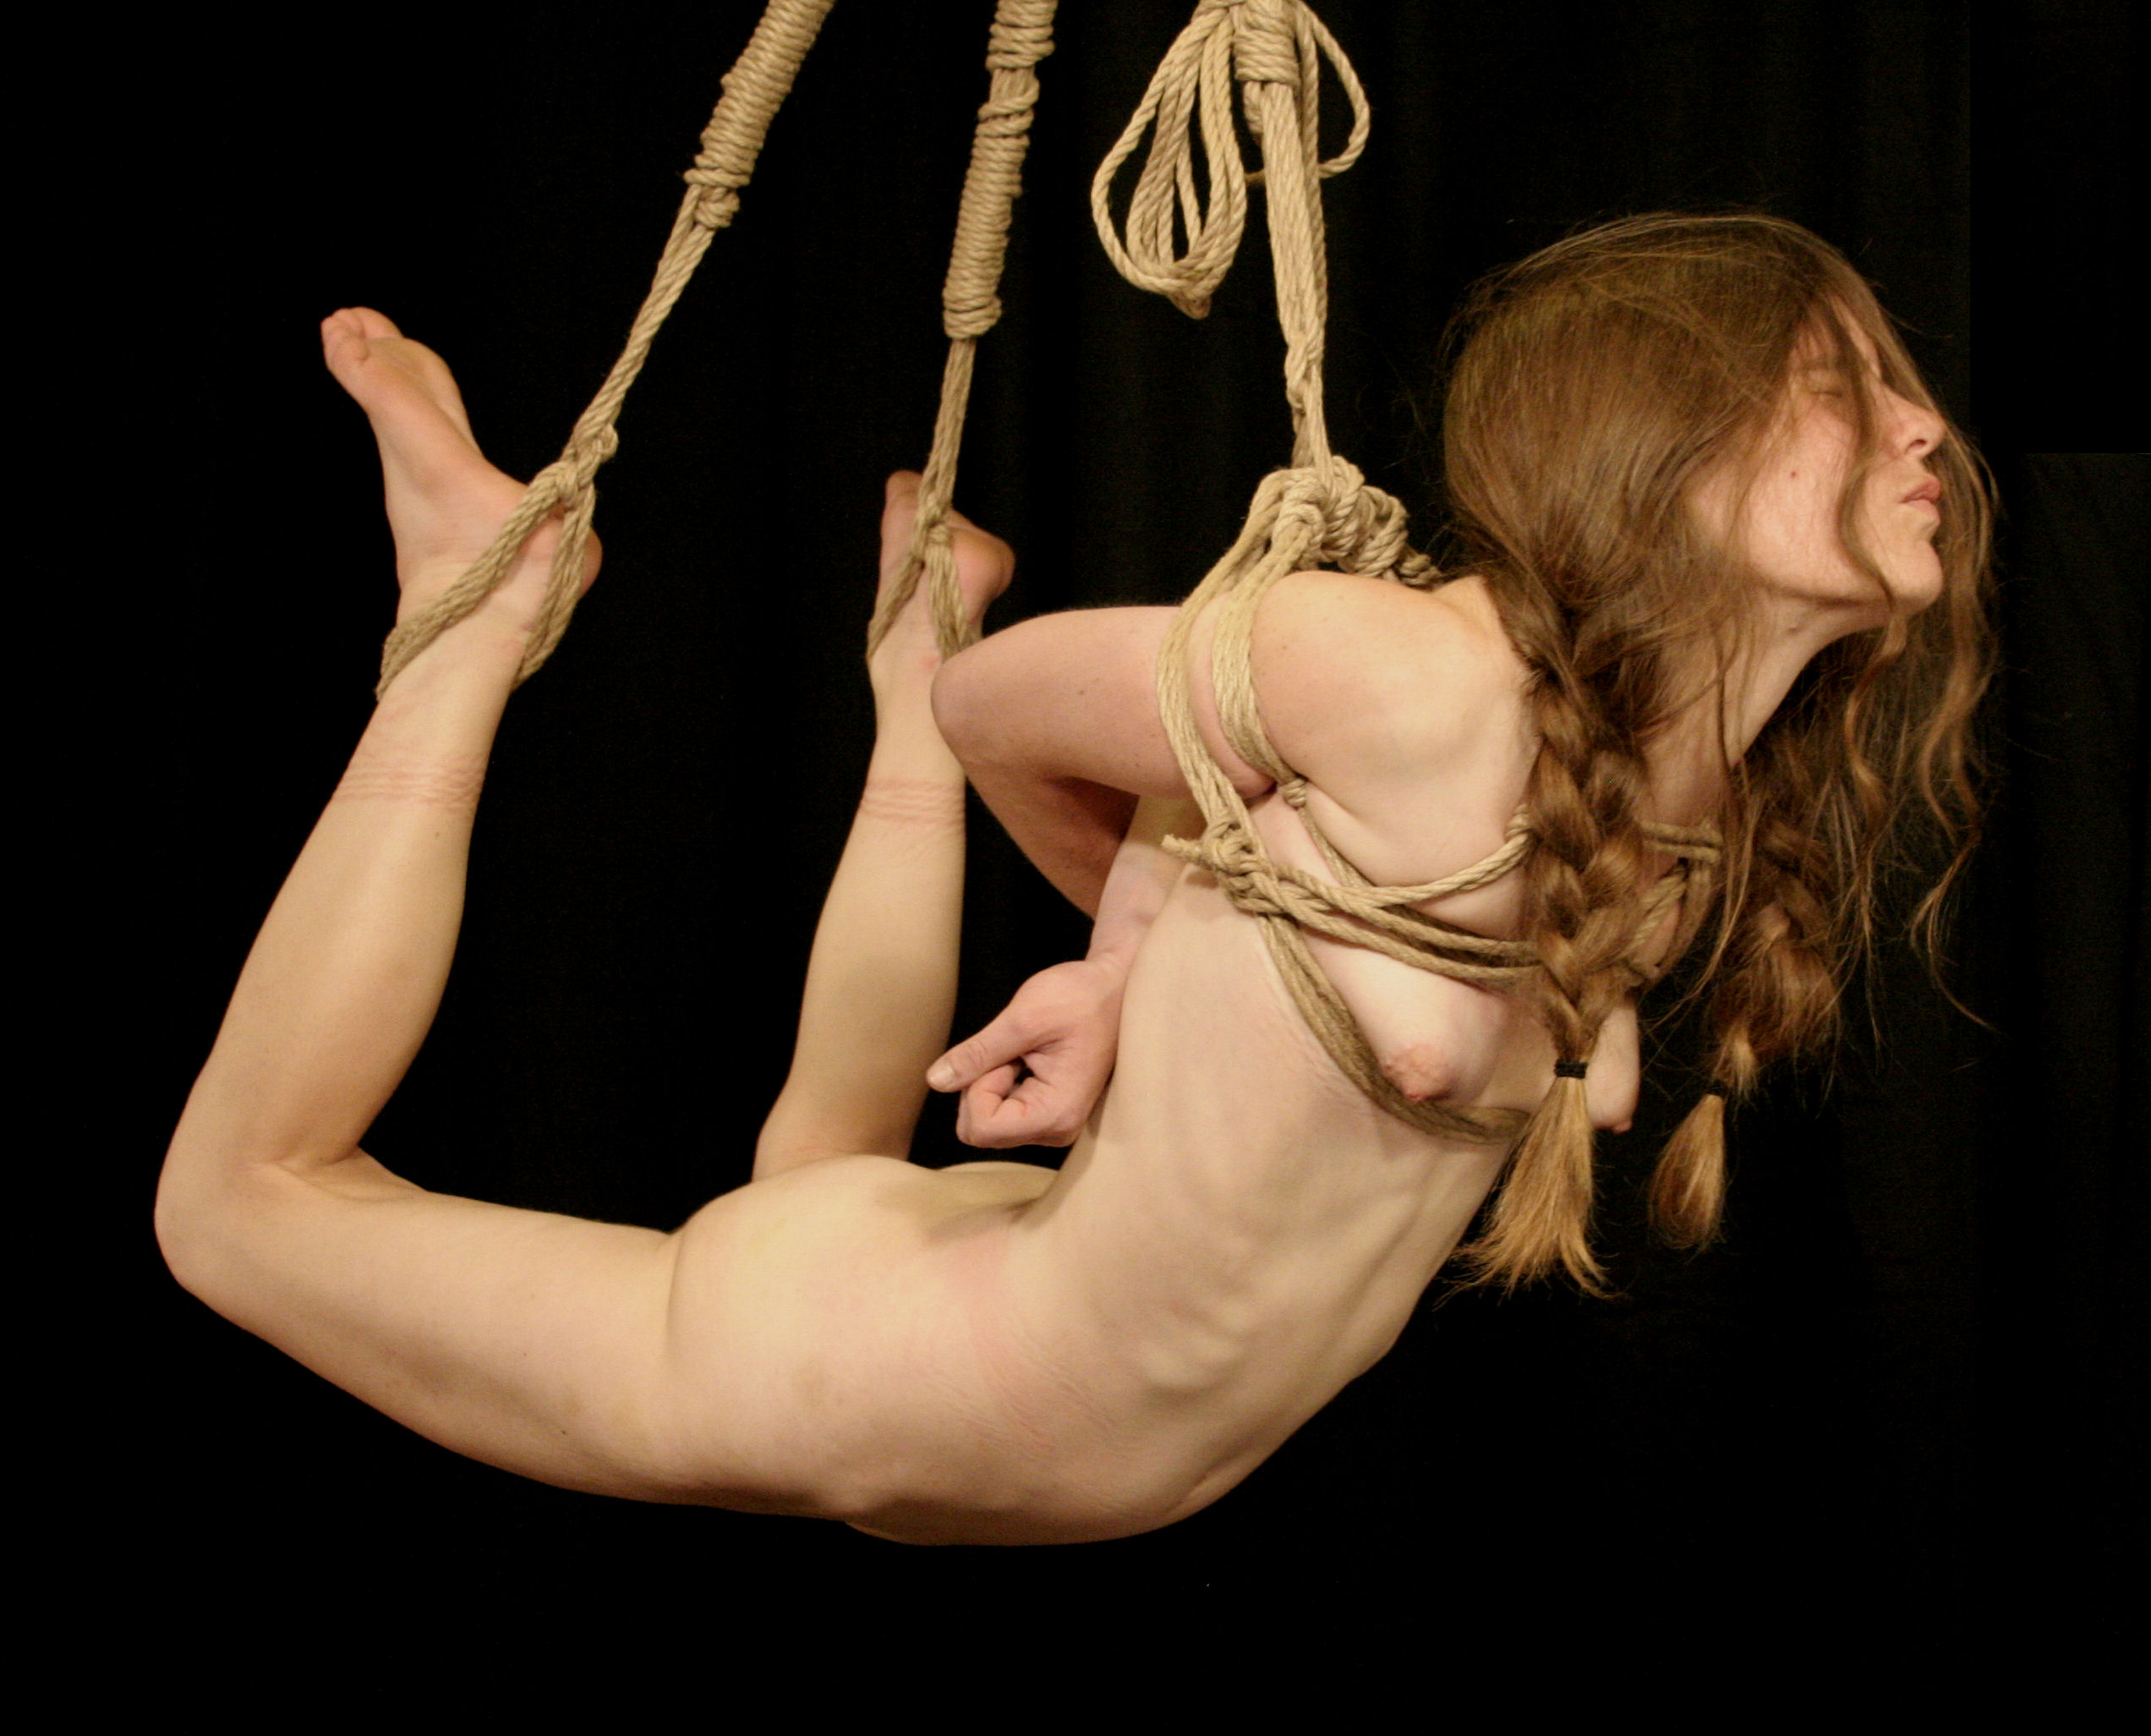 Woman hanged bdsm adult doll